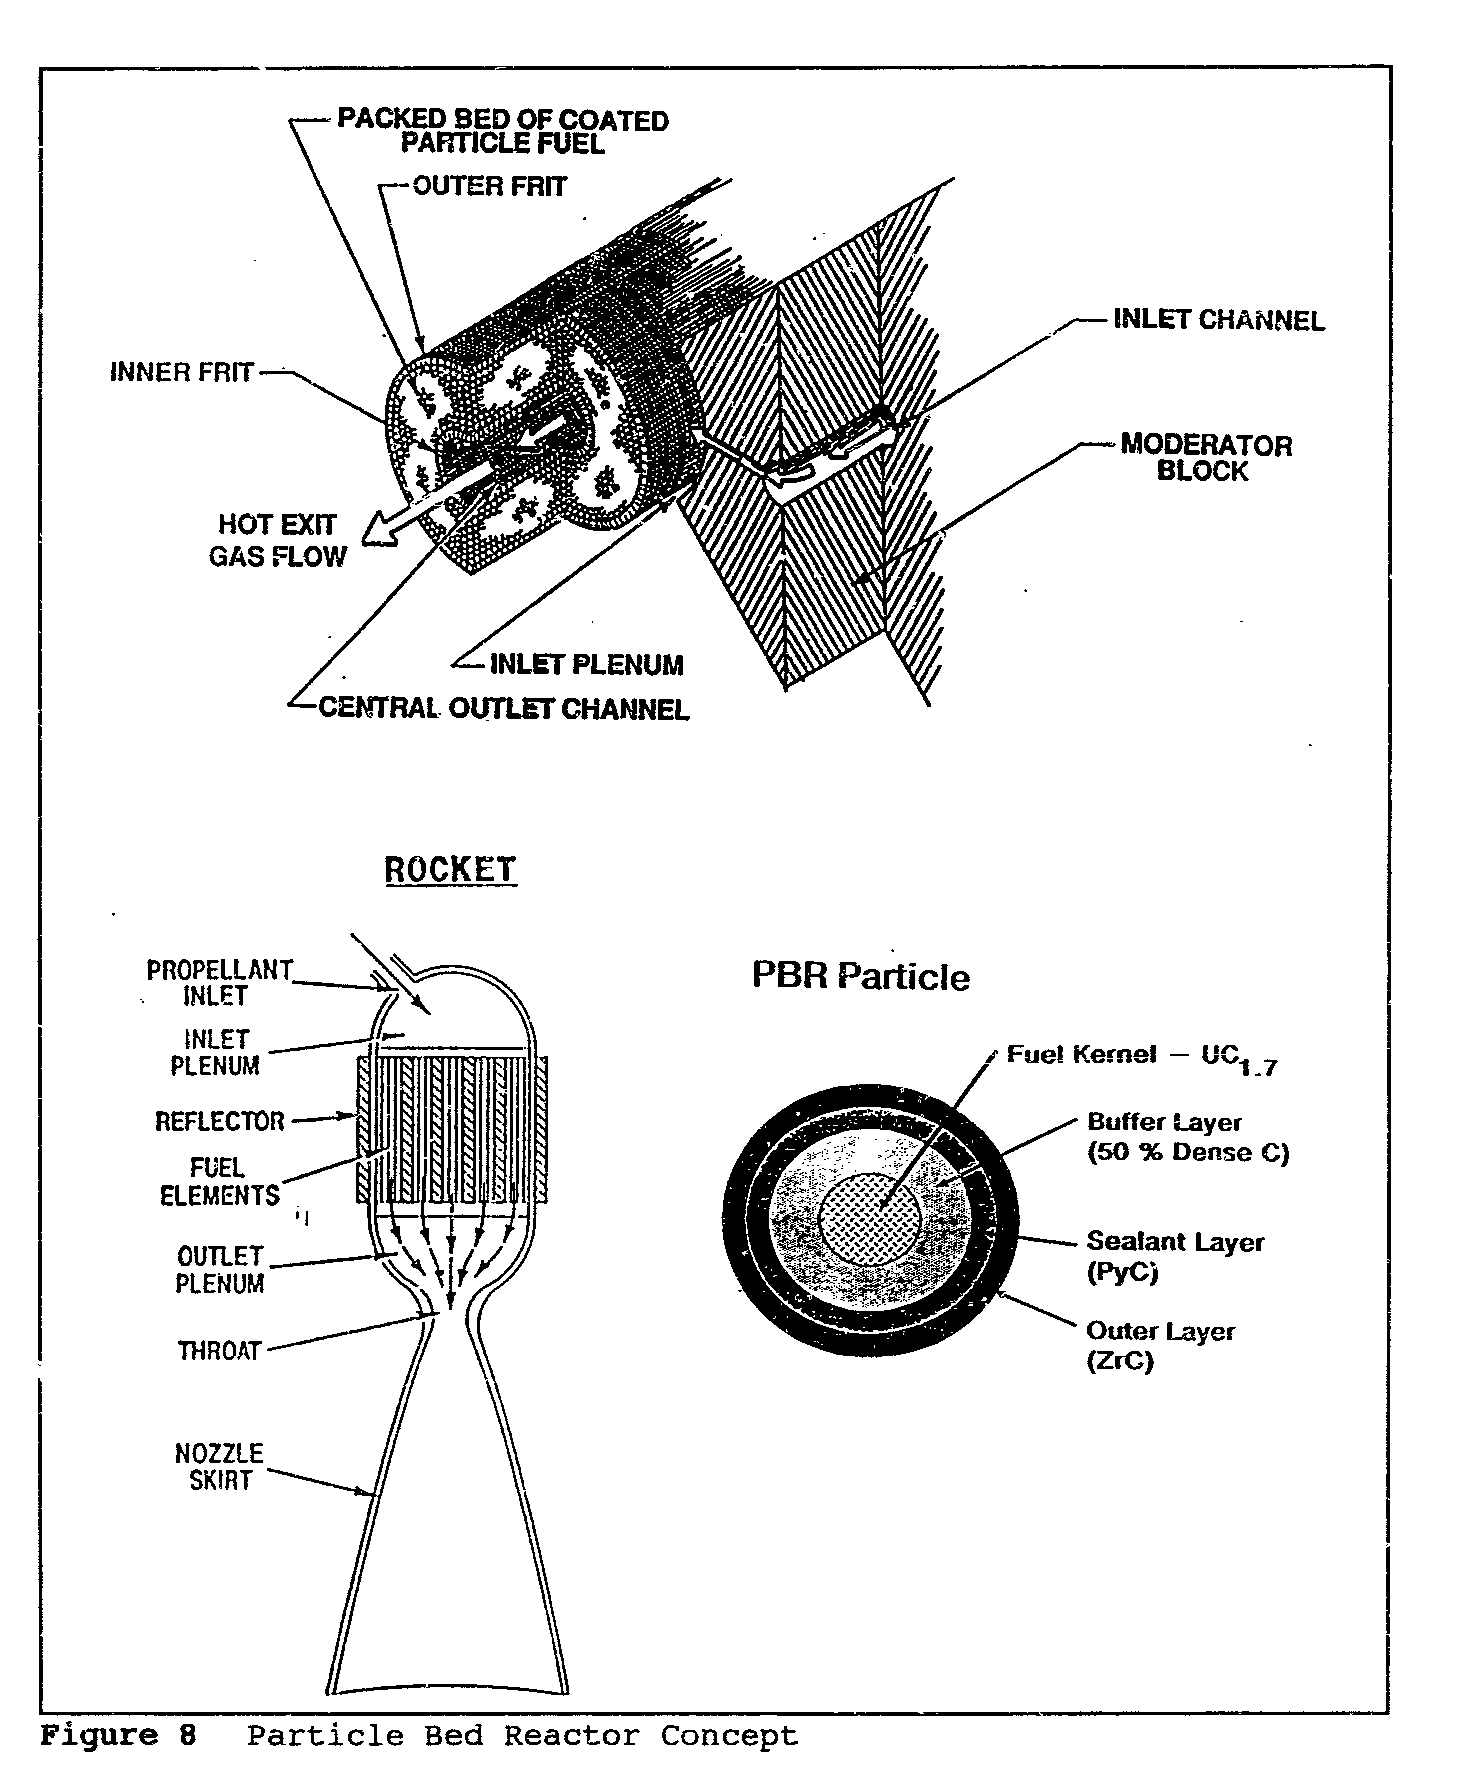 Steam Nuclear Reactor Diagram